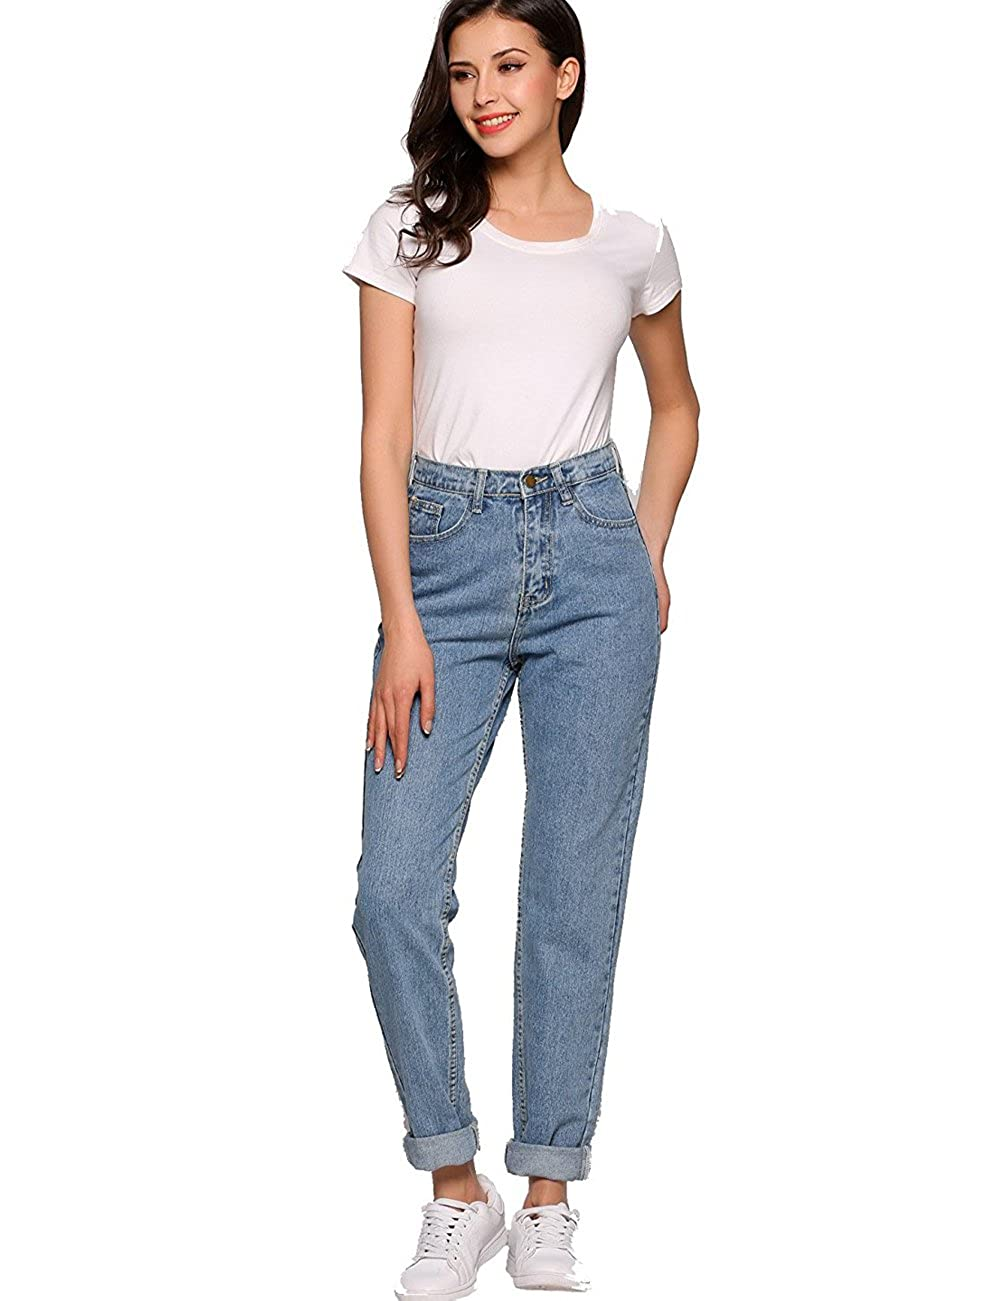 5cff5c2e879d AKEWEI Boyfriend Jeans for Women 1980s High Waist Loose Fit Classic  Straight Pants at Amazon Women's Jeans store